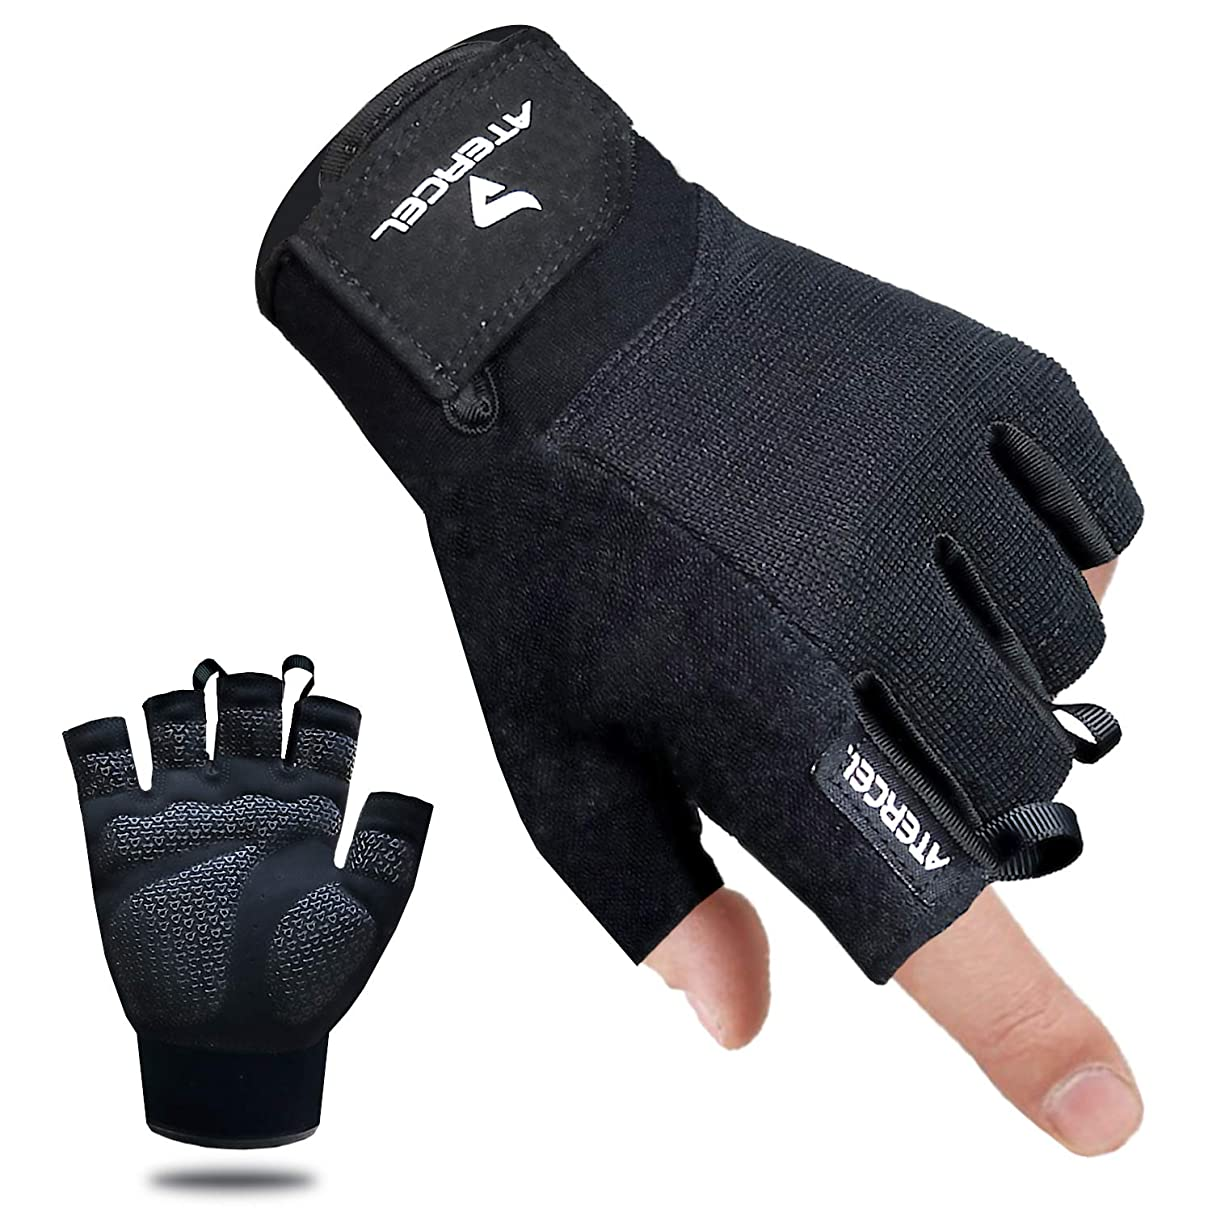 Atercel Workout Gloves, Best Exercise Gloves for Weight Lifting, Crossfit, Cycling, Gym, Training, Breathable & Snug fit, for Men & Women